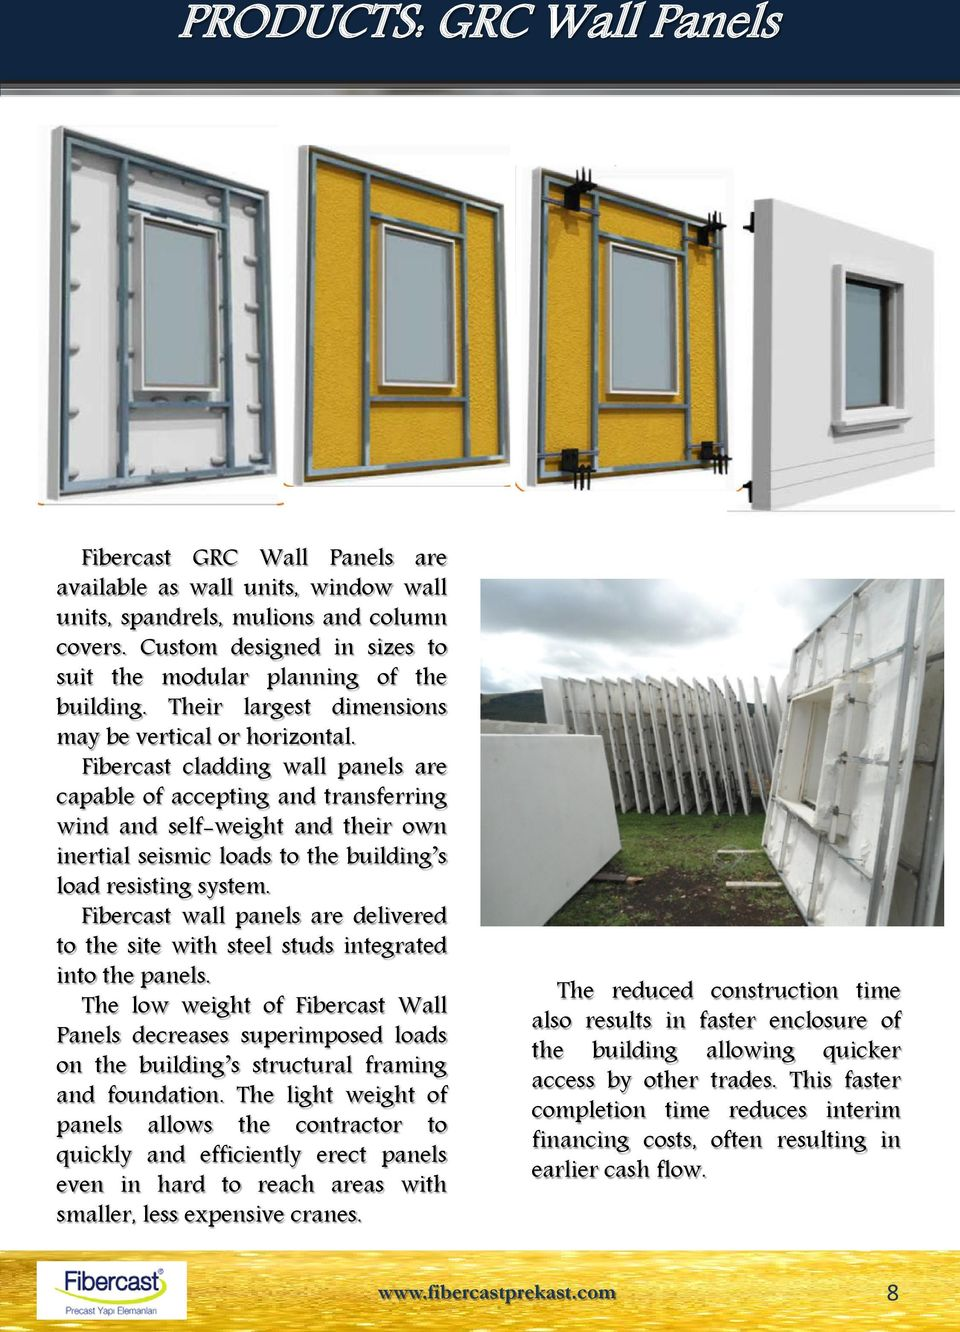 Fibercast cladding wall panels are capable of accepting and transferring wind and self-weight and their own inertial seismic loads to the building s load resisting system.